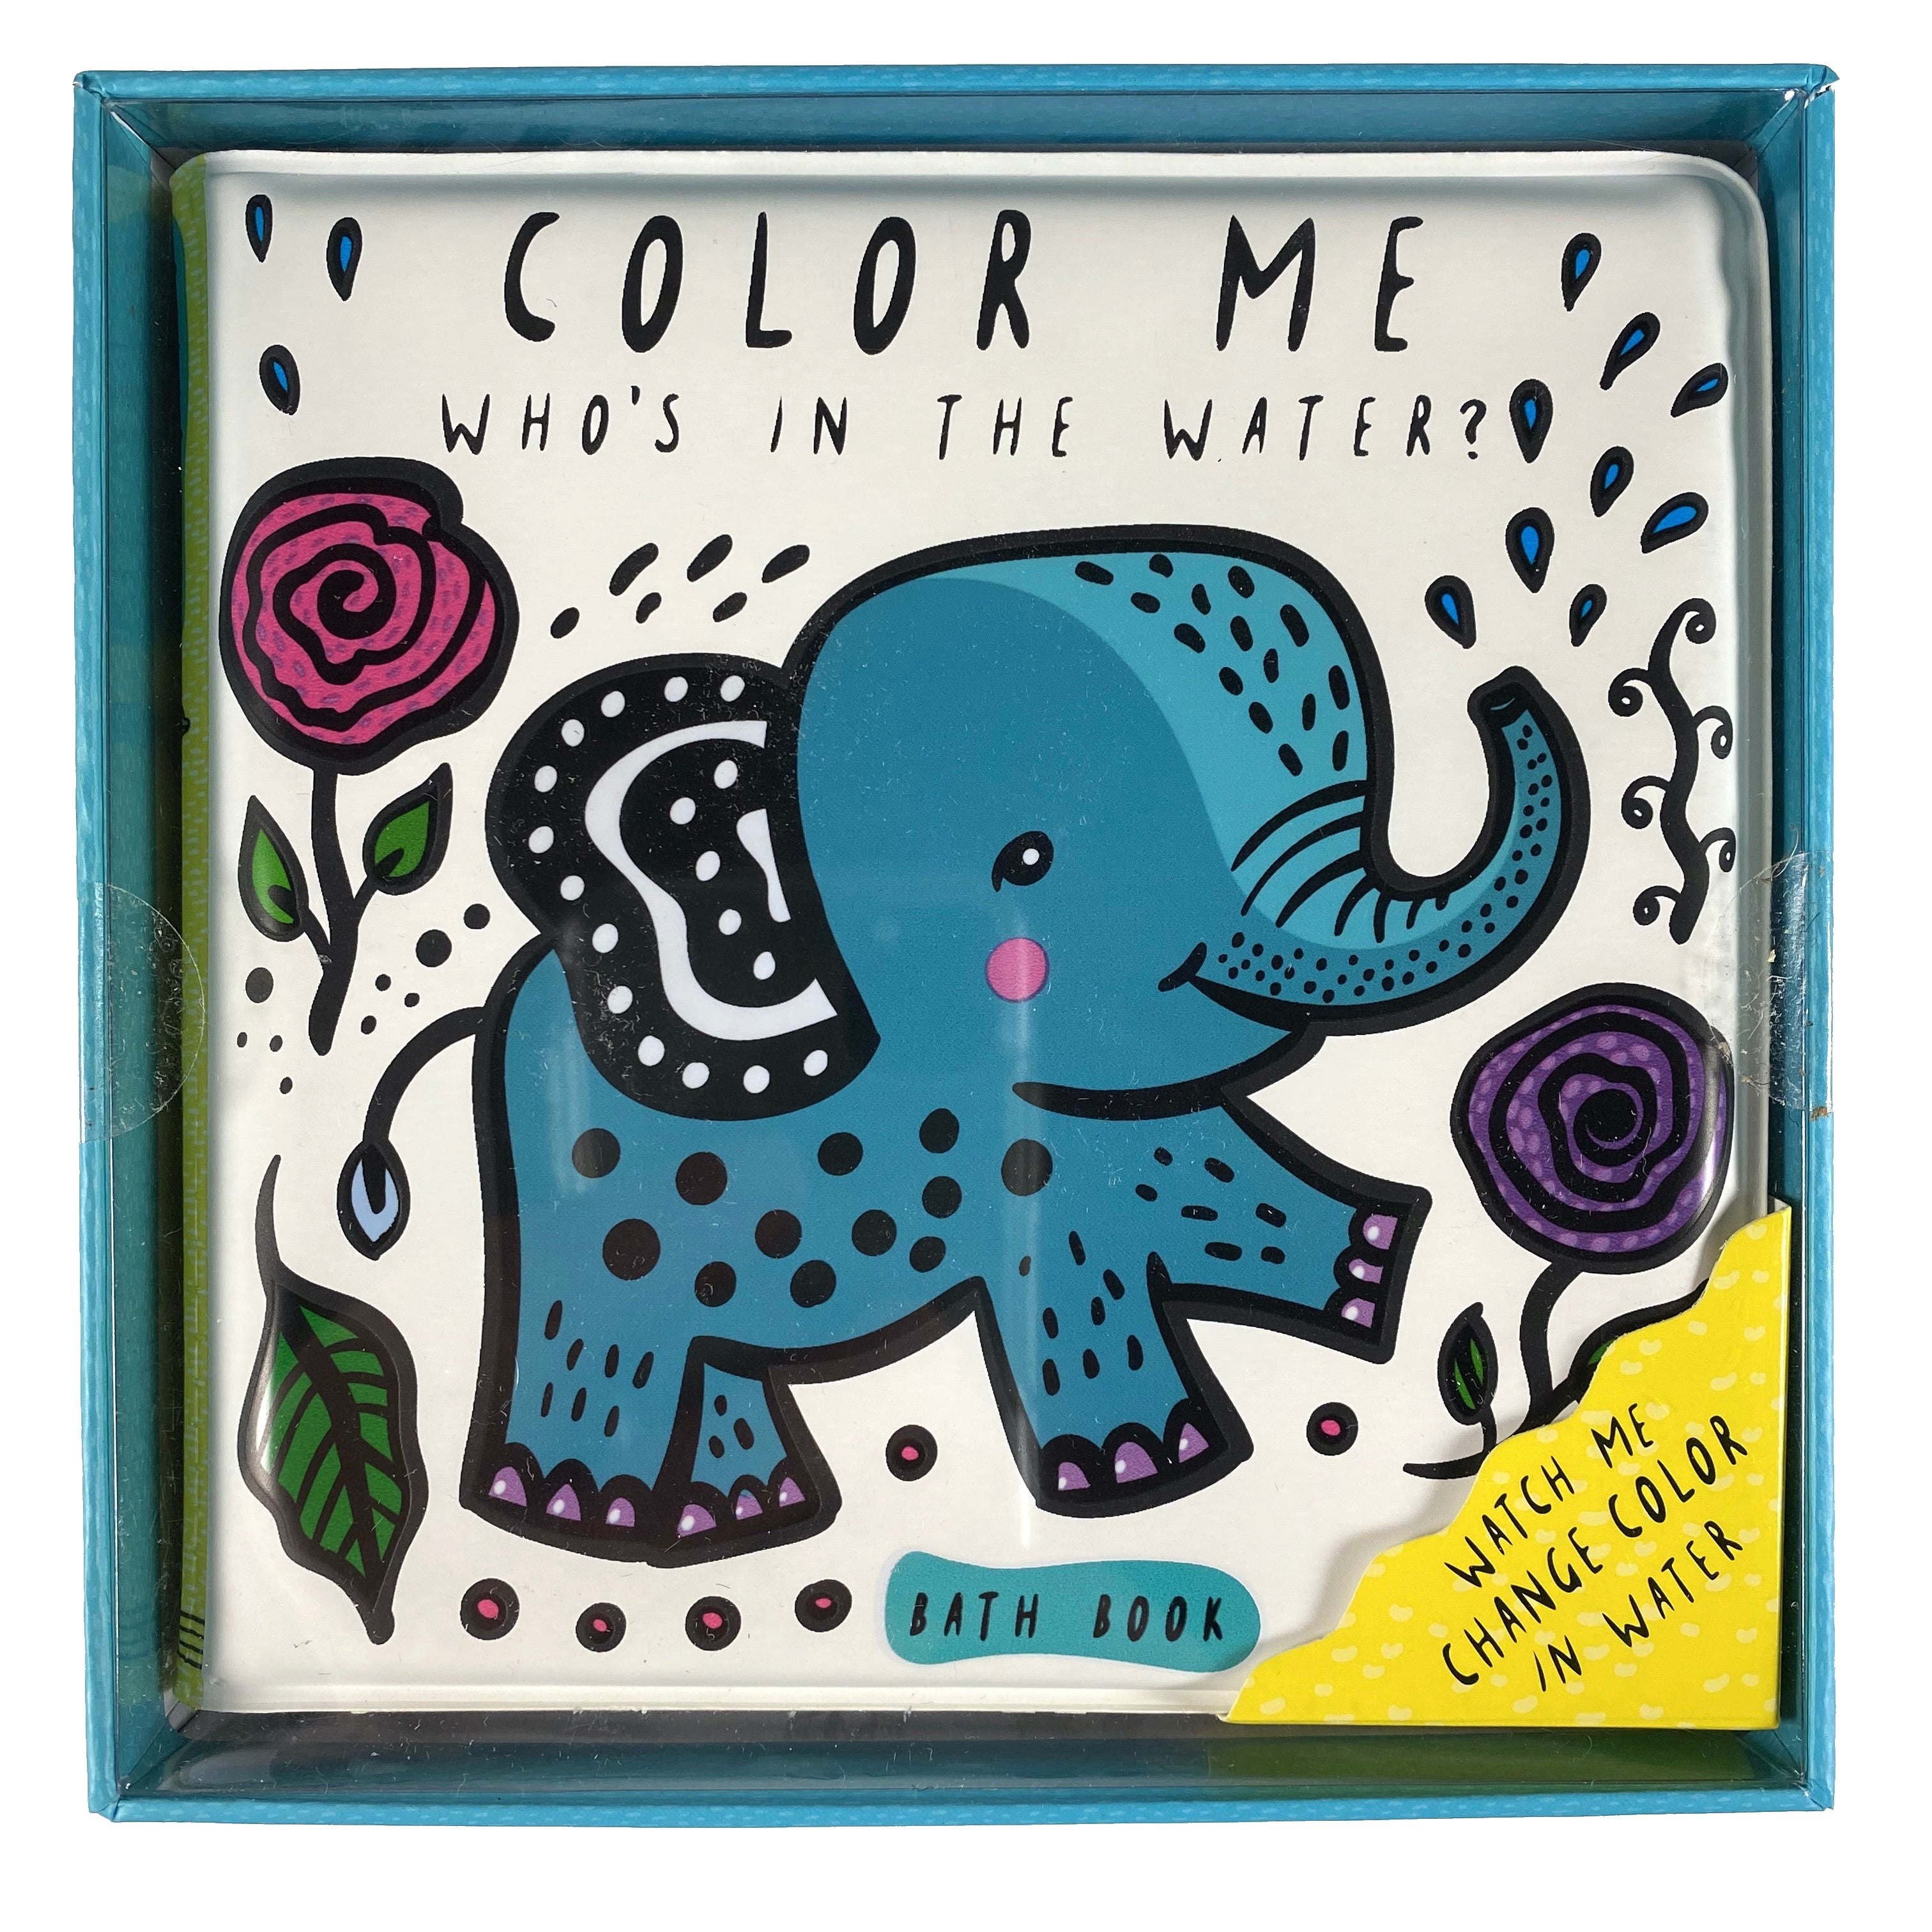 Color Me - Who's in the Water? Bath Book